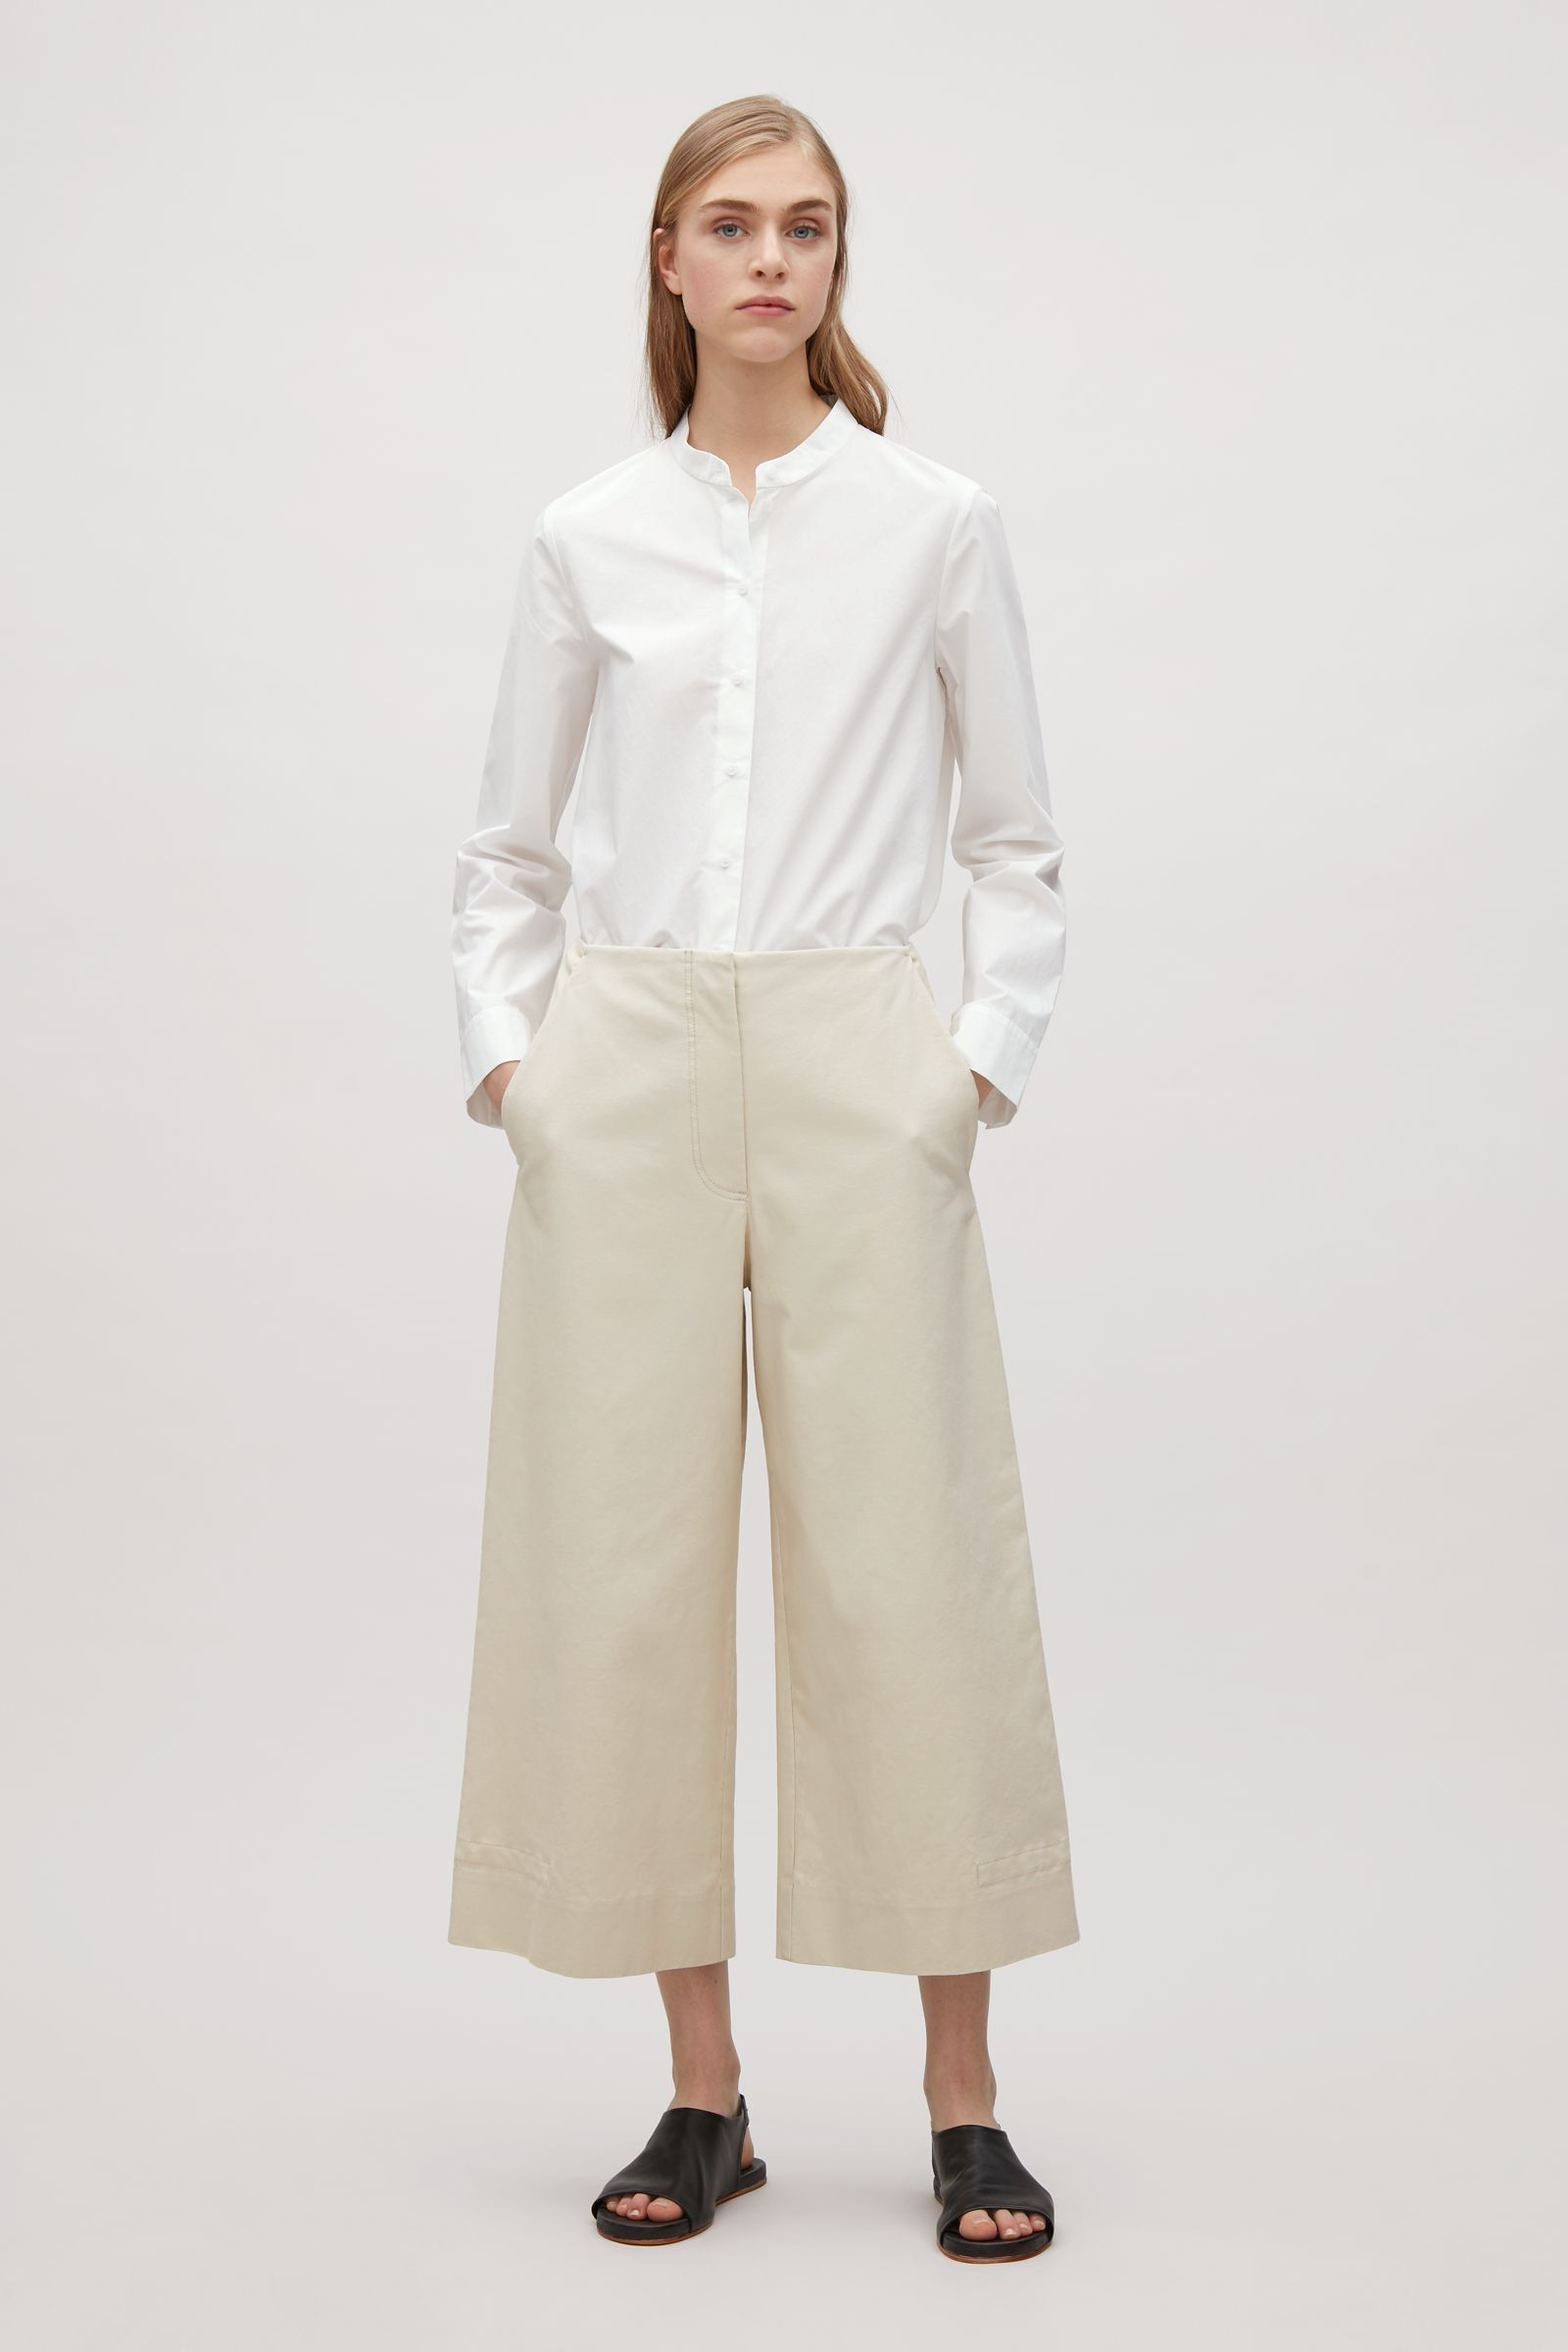 7ab6bda82dad COS image 1 of Cotton-twill culottes in Calico Beige | Style ...